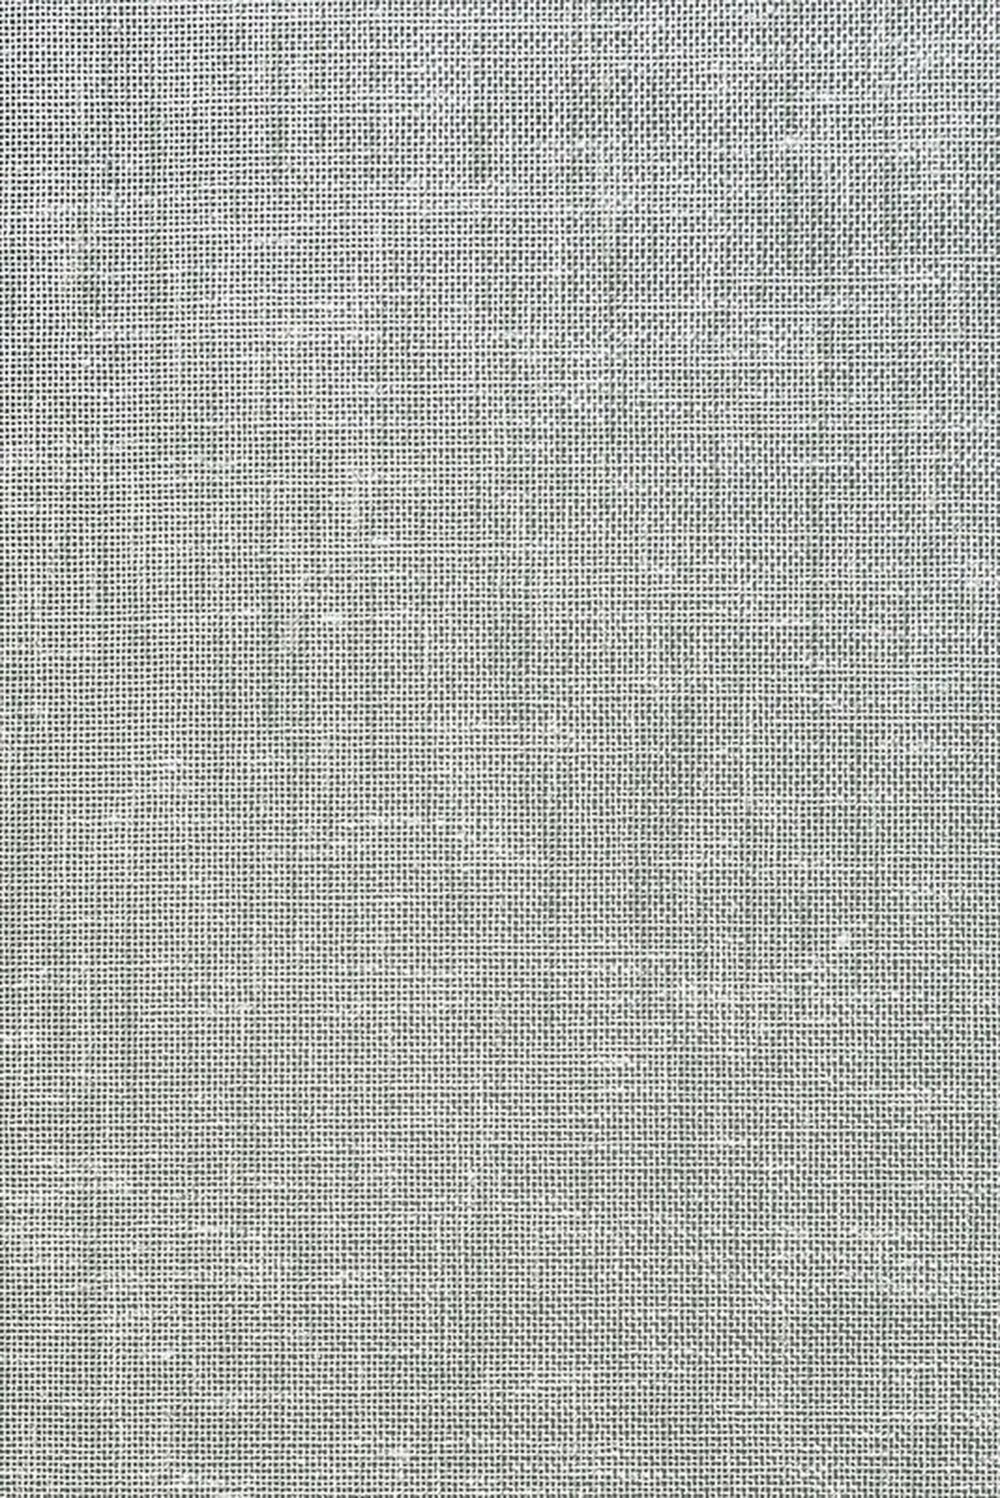 Photo of the fabric Sencha * Dove swatch by James Dunlop Essentials. Use for Drapery Sheer. Style of Plain, Sheer